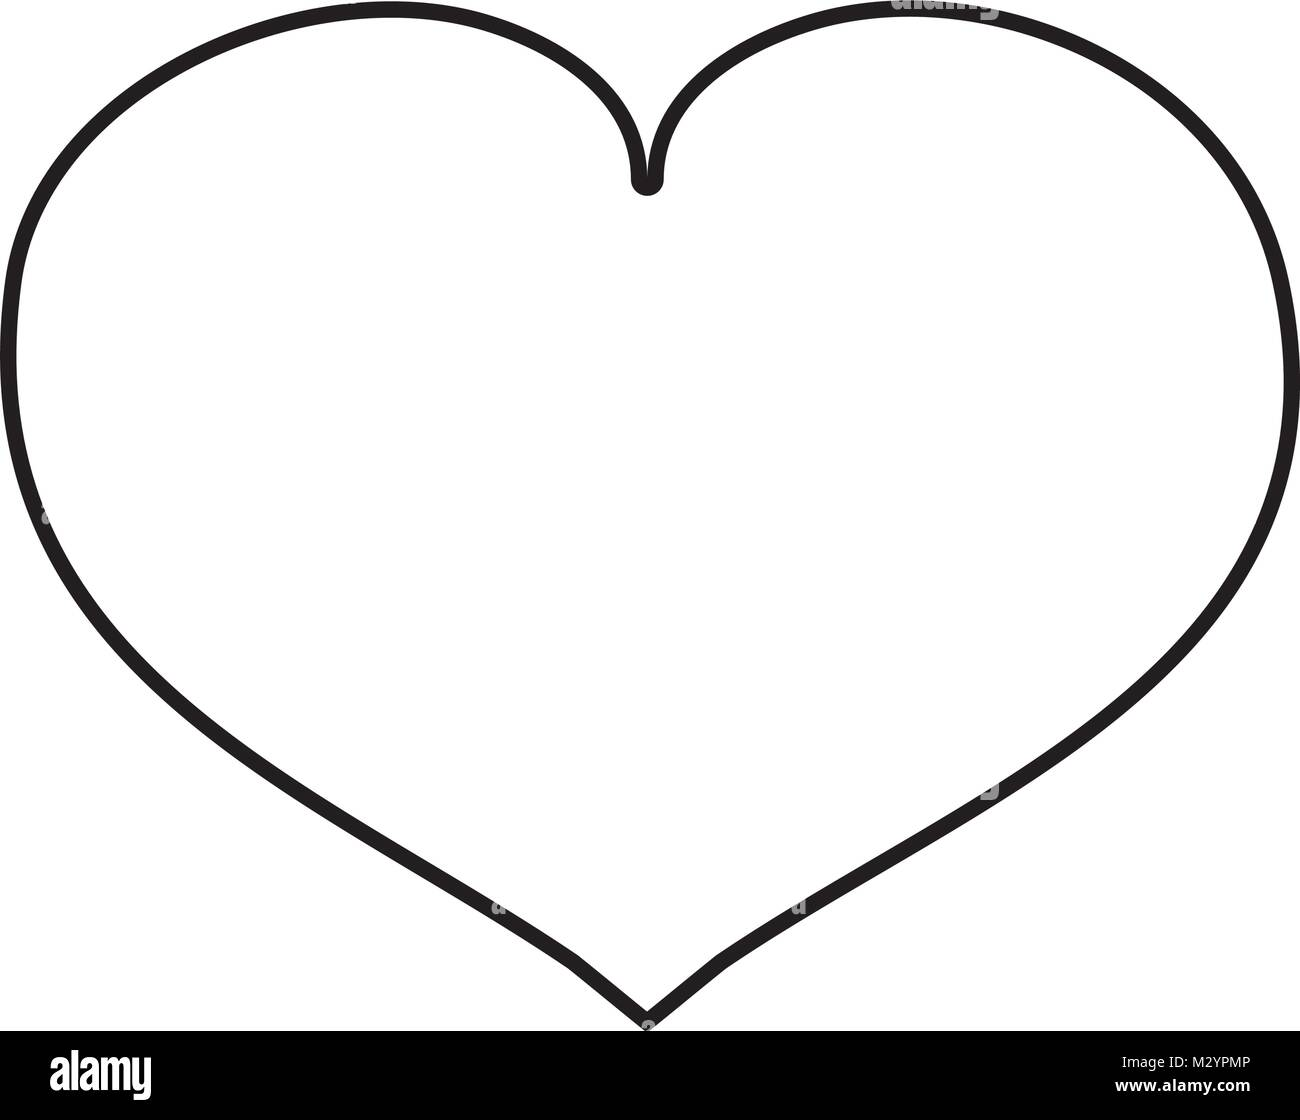 line heart love symbol of passion - Stock Image